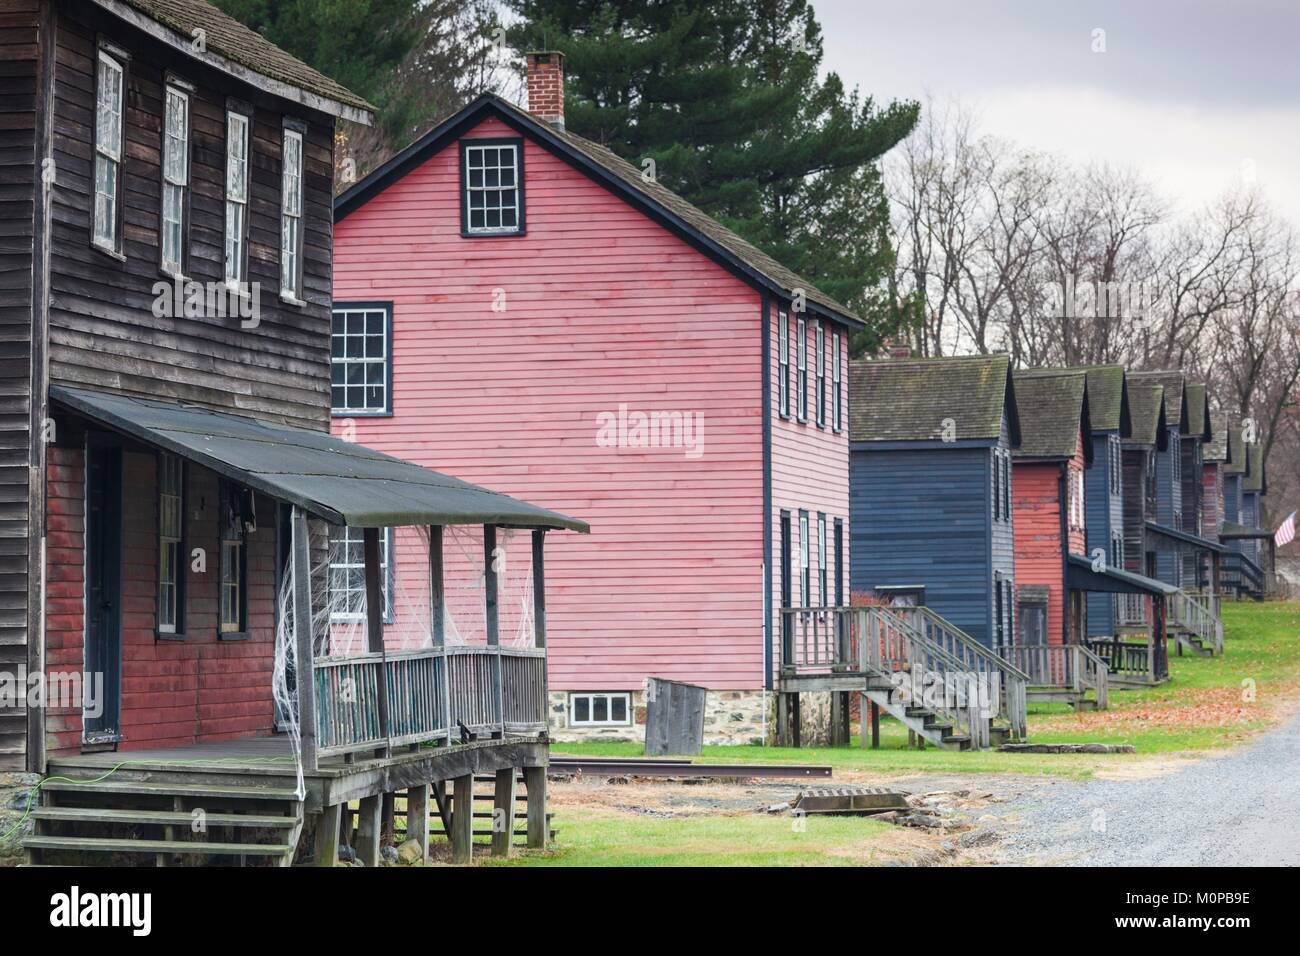 United States,Pennsylvania,Eckley,Eckley Miners Village,fomer mining village Stock Photo